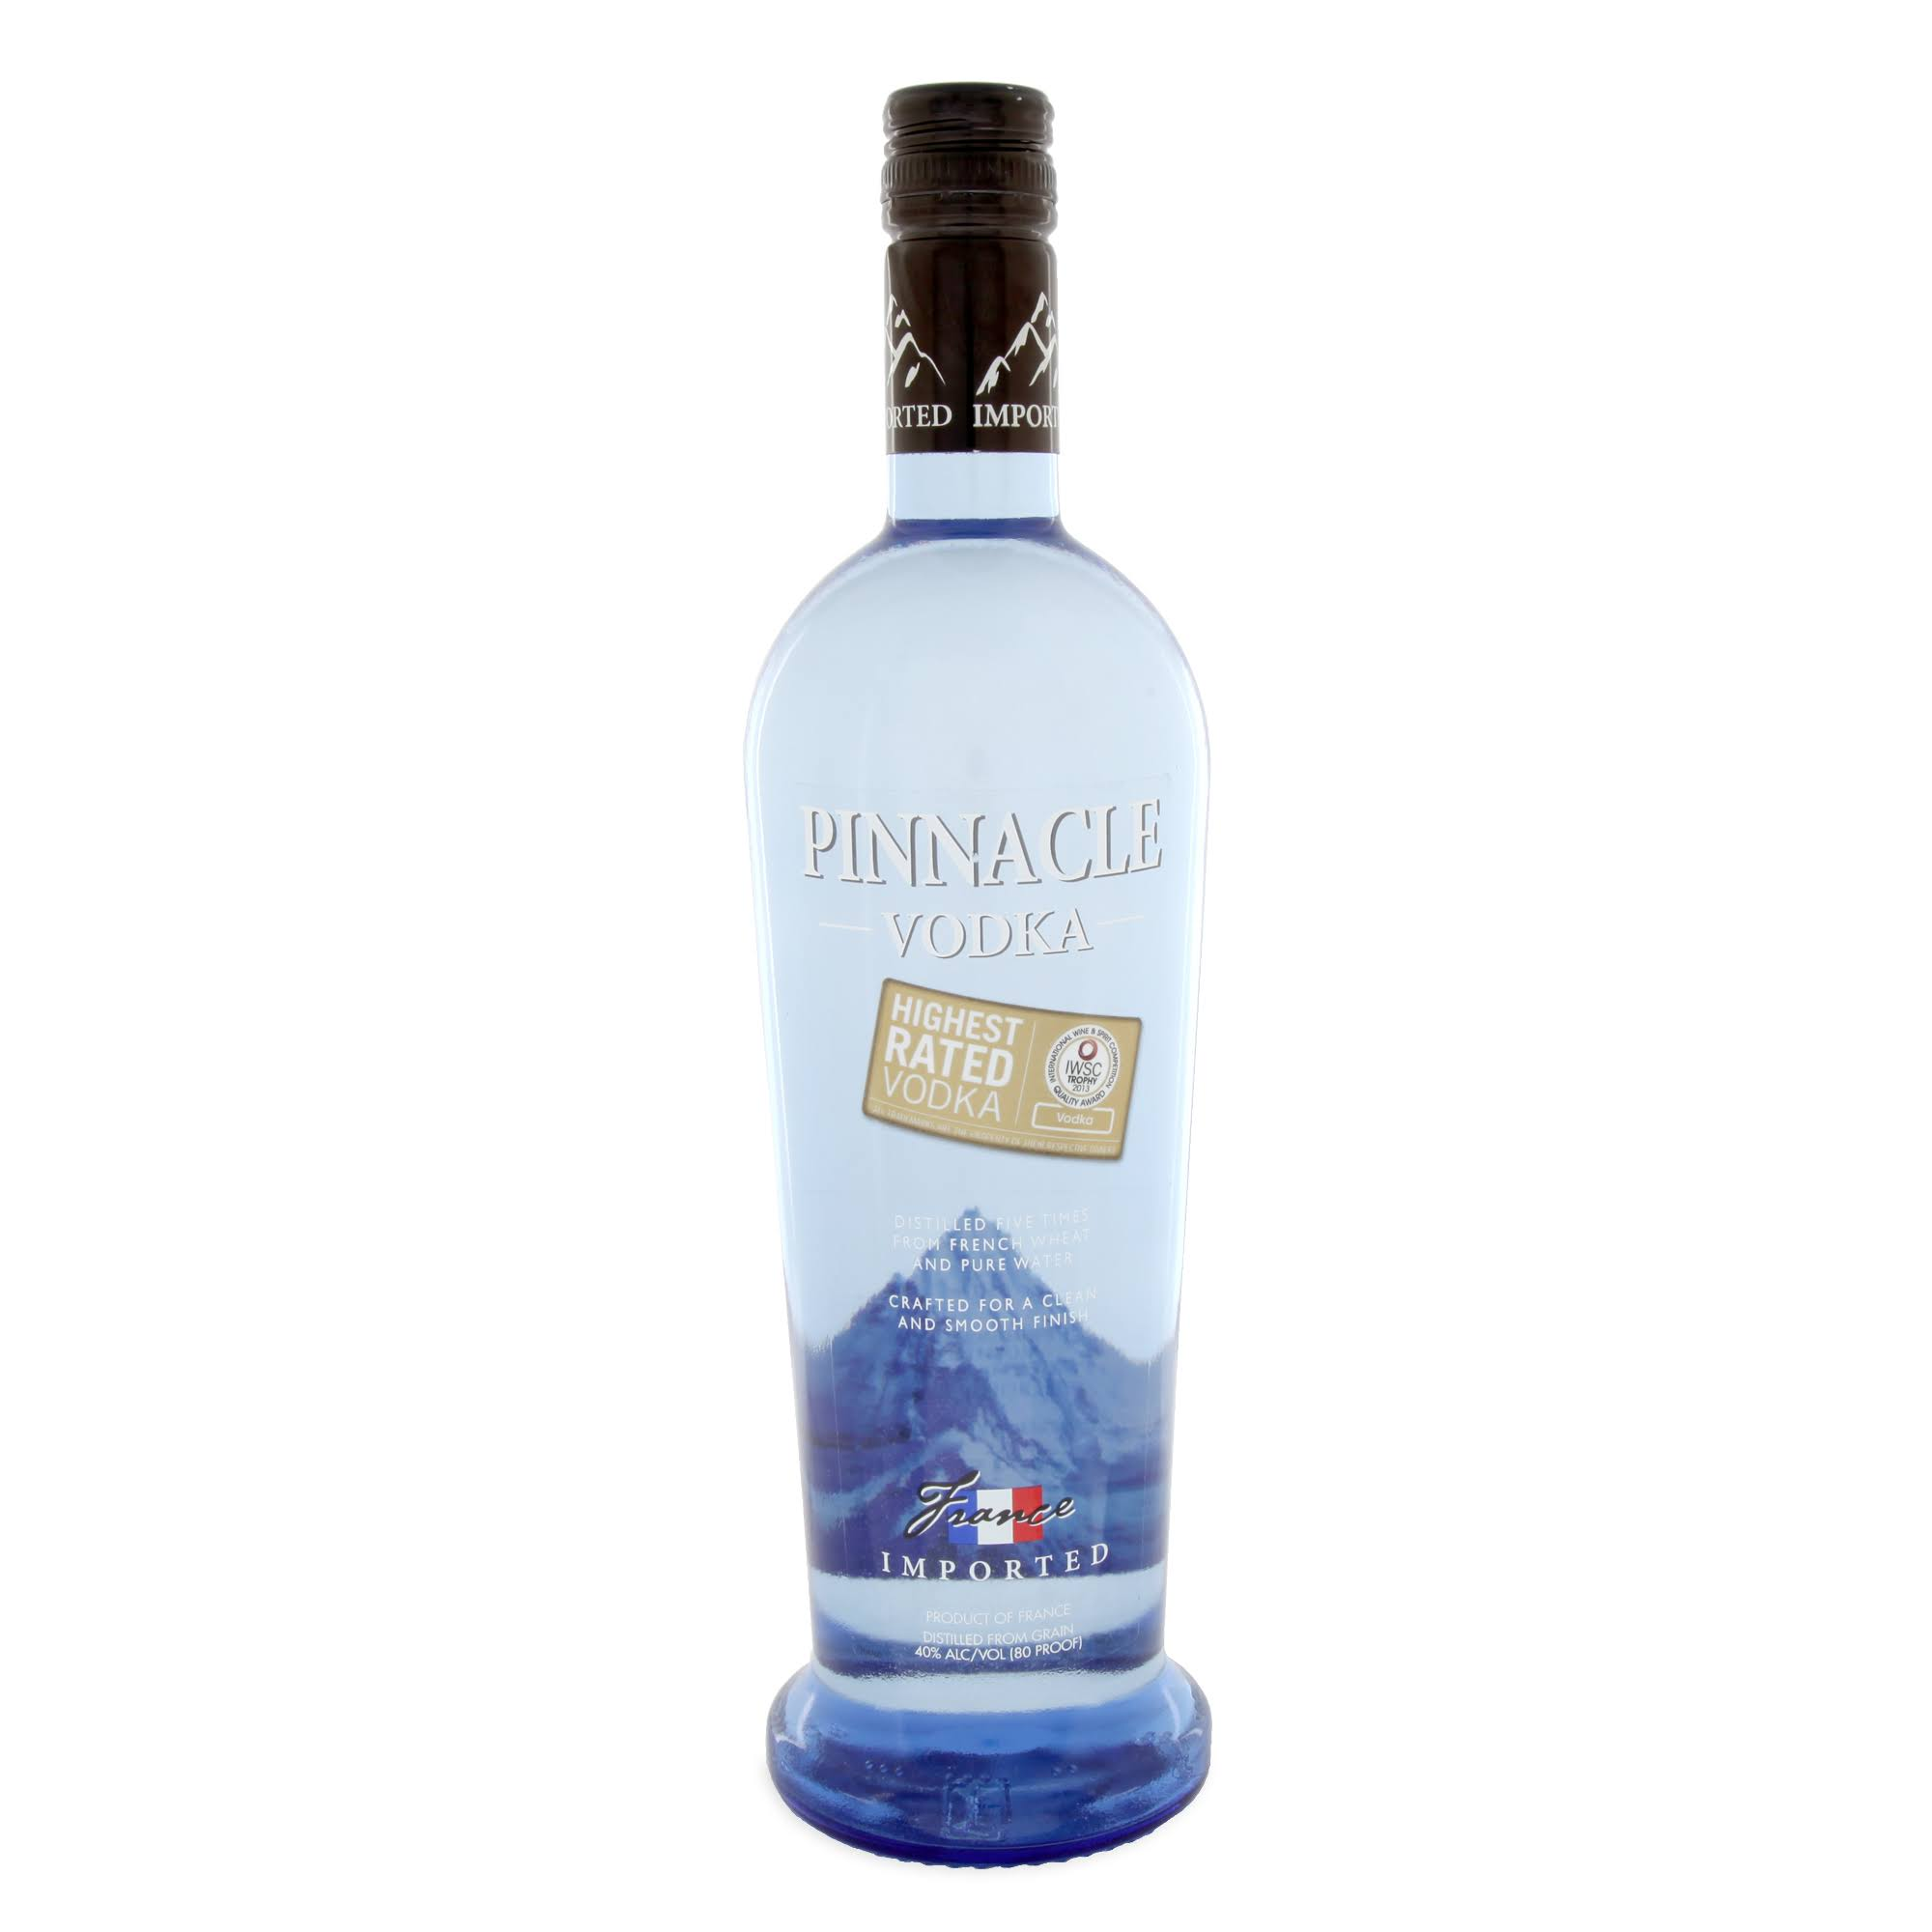 Pinnacle Vodka - 750 ml bottle